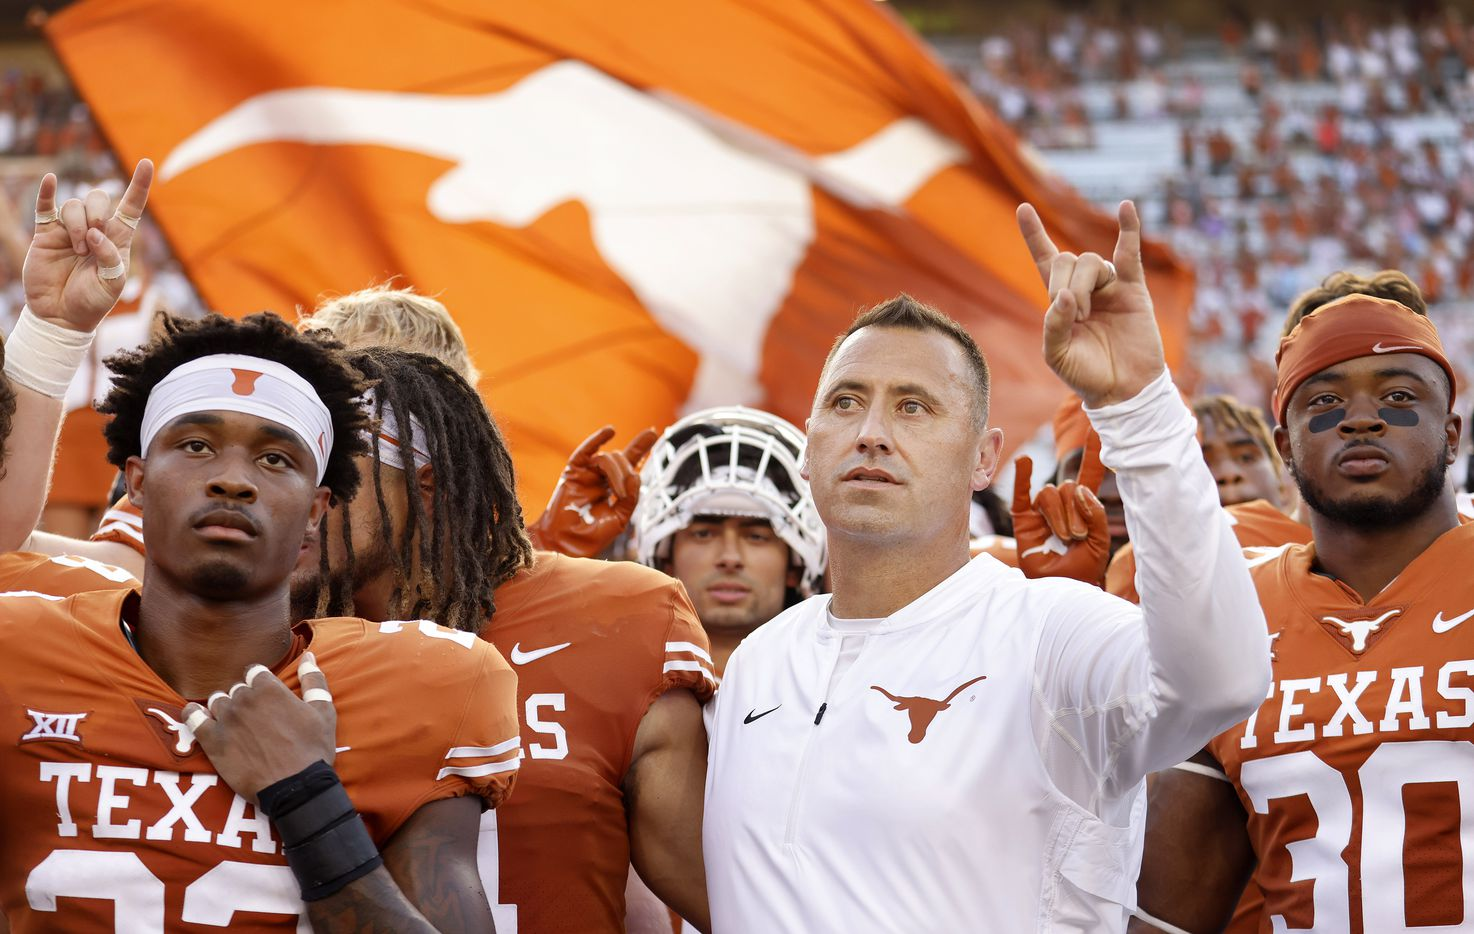 Texas Longhorns head coach Steve Sarkisian (center) and his players sing 'The Eyes of Texas' following their win over the Louisiana-Lafayette Ragin Cajuns at DKR-Texas Memorial Stadium in Austin, Saturday, September 4, 2021. (Tom Fox/The Dallas Morning News)